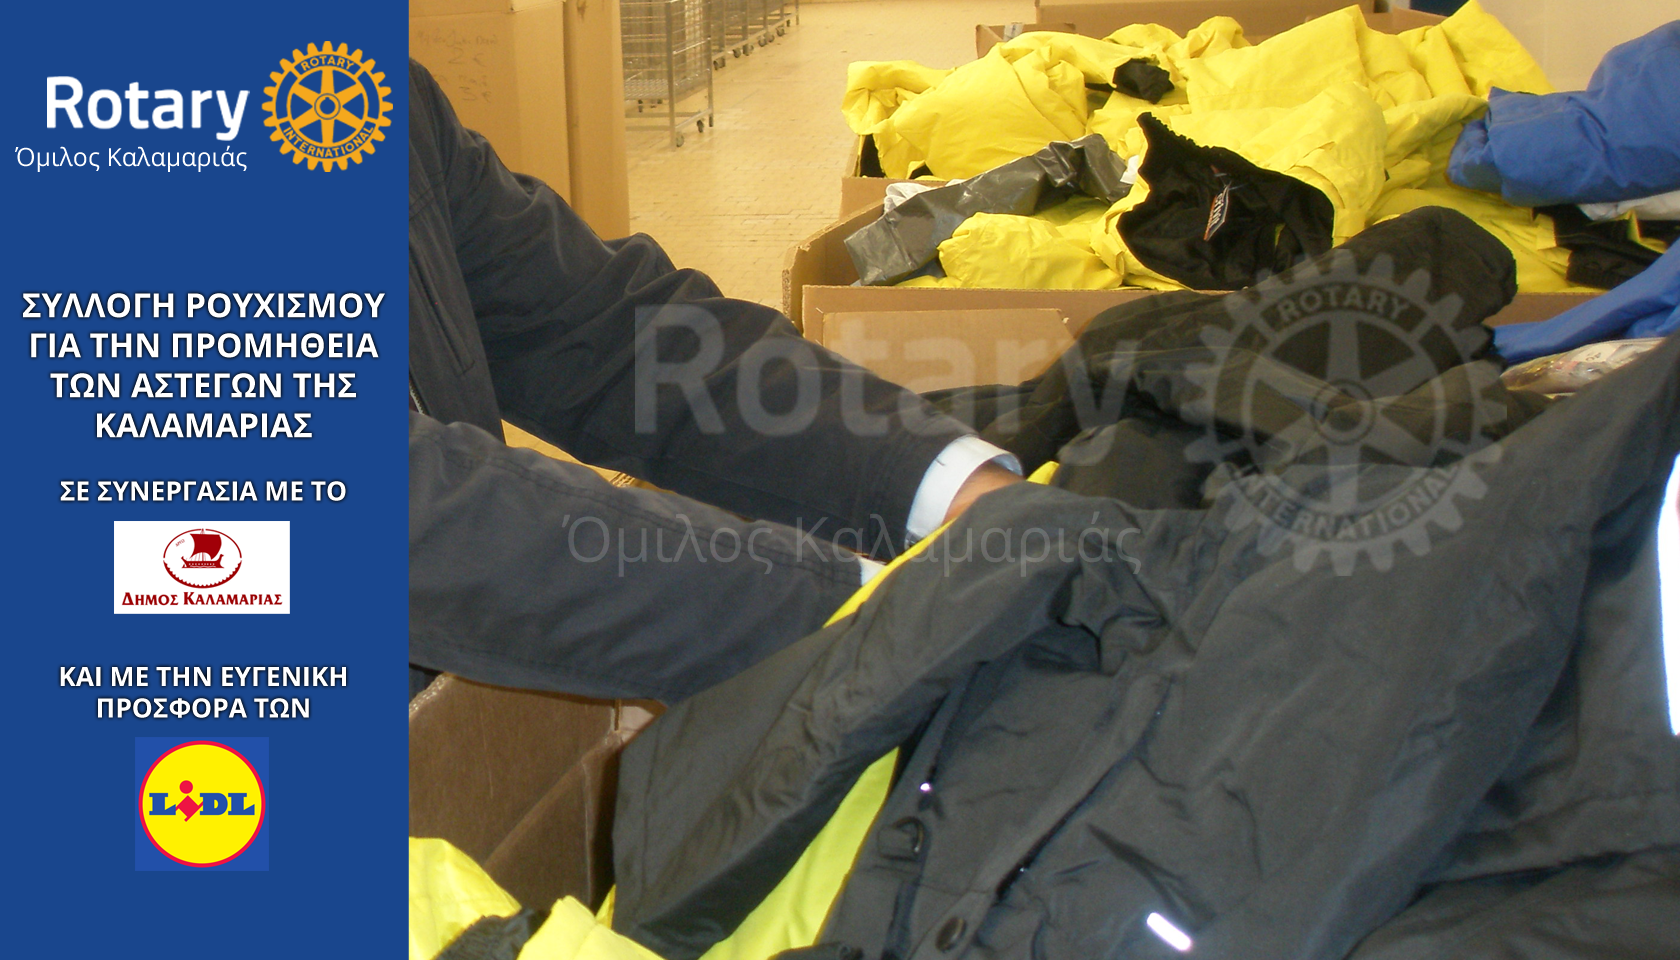 Rotary-Club-Kalamaria-and-Lidl-give-clothes-for-homeles-007